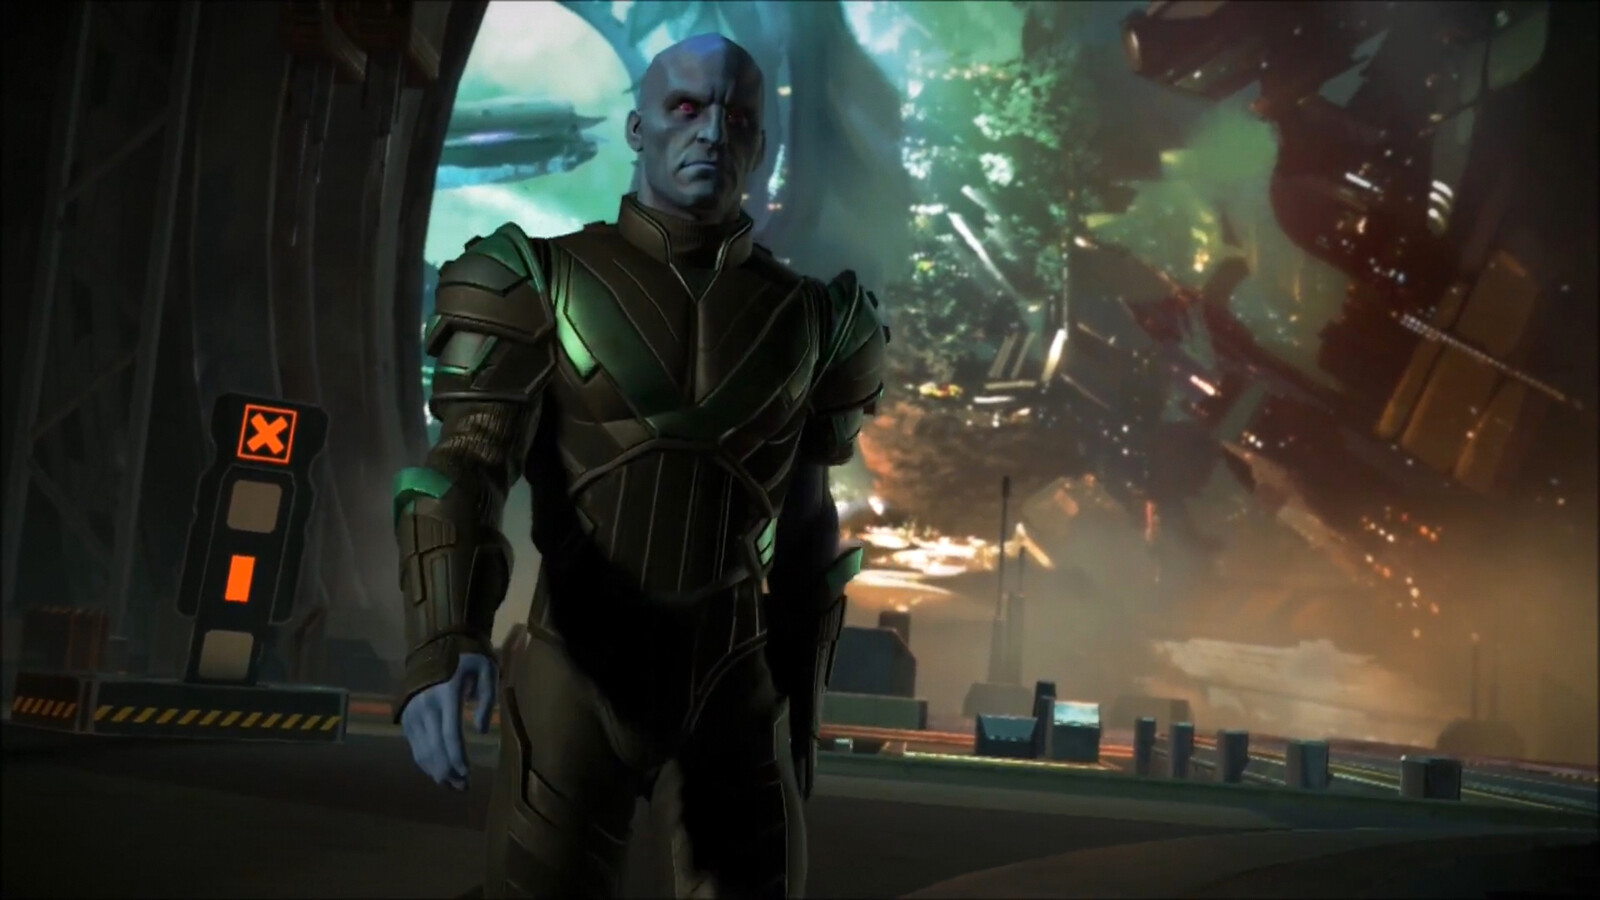 Kree armor (Guardians of the Galaxy: The Telltale Series)